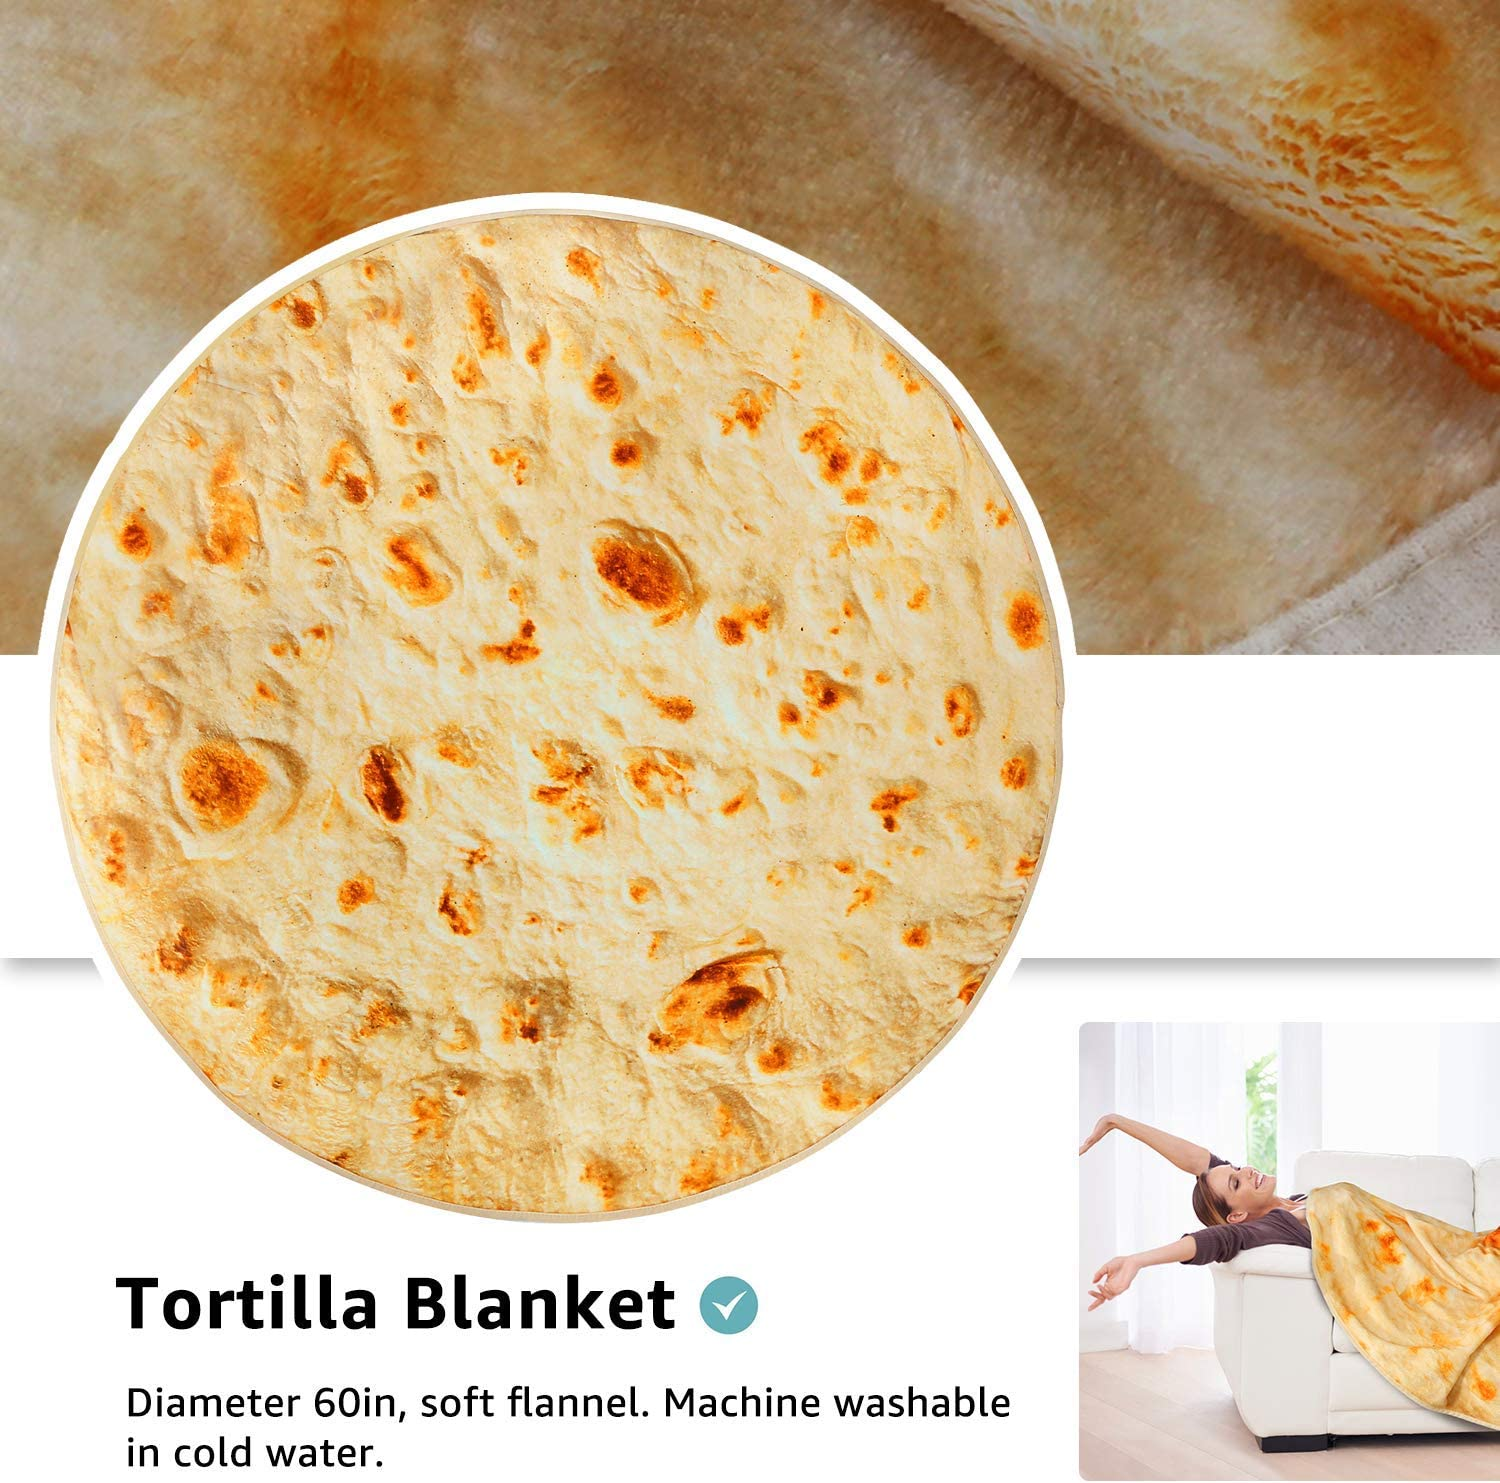 YISUN Picnic Burrito Blanket 4.9ft//59in Diameter Tortilla Printing Round Soft Novelty Beach Blanket Towel for Adults and Baby Warm and Lightweight to be a Gaint Human Burrito